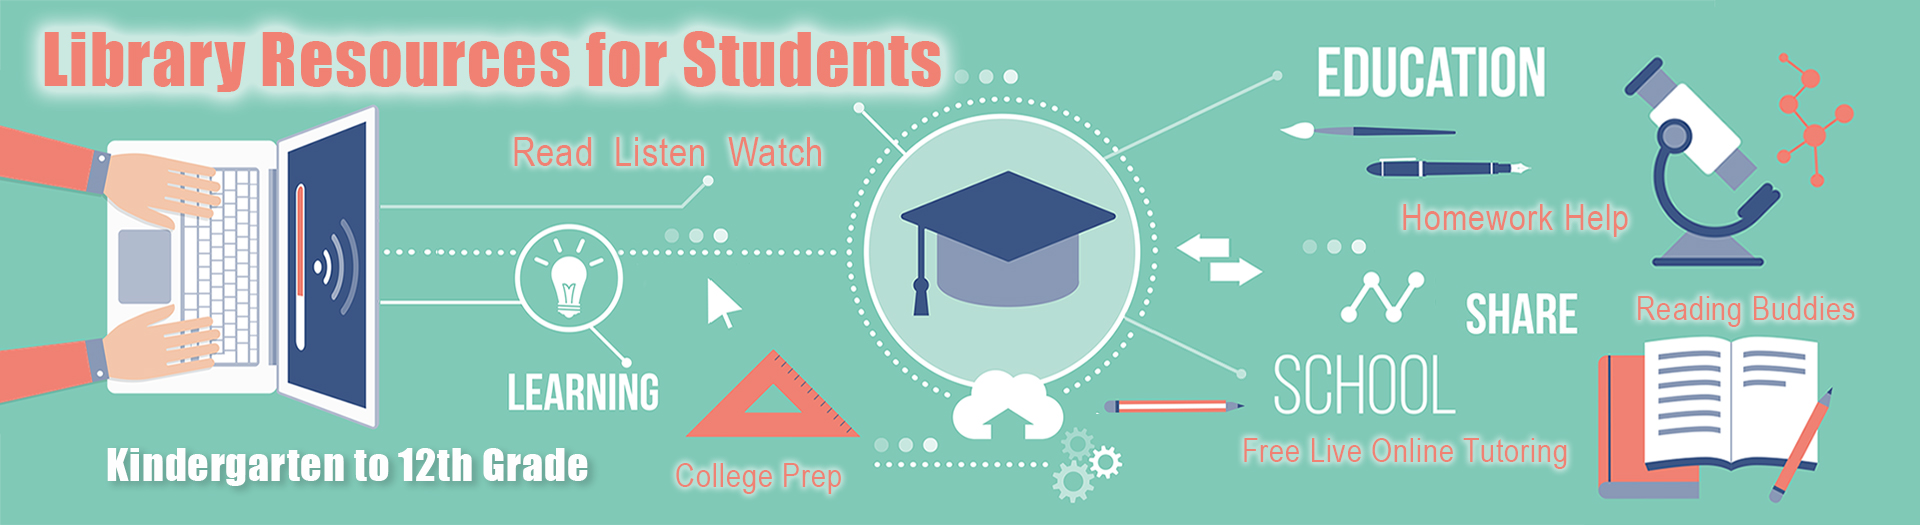 Student Resources 1-5-21 banner